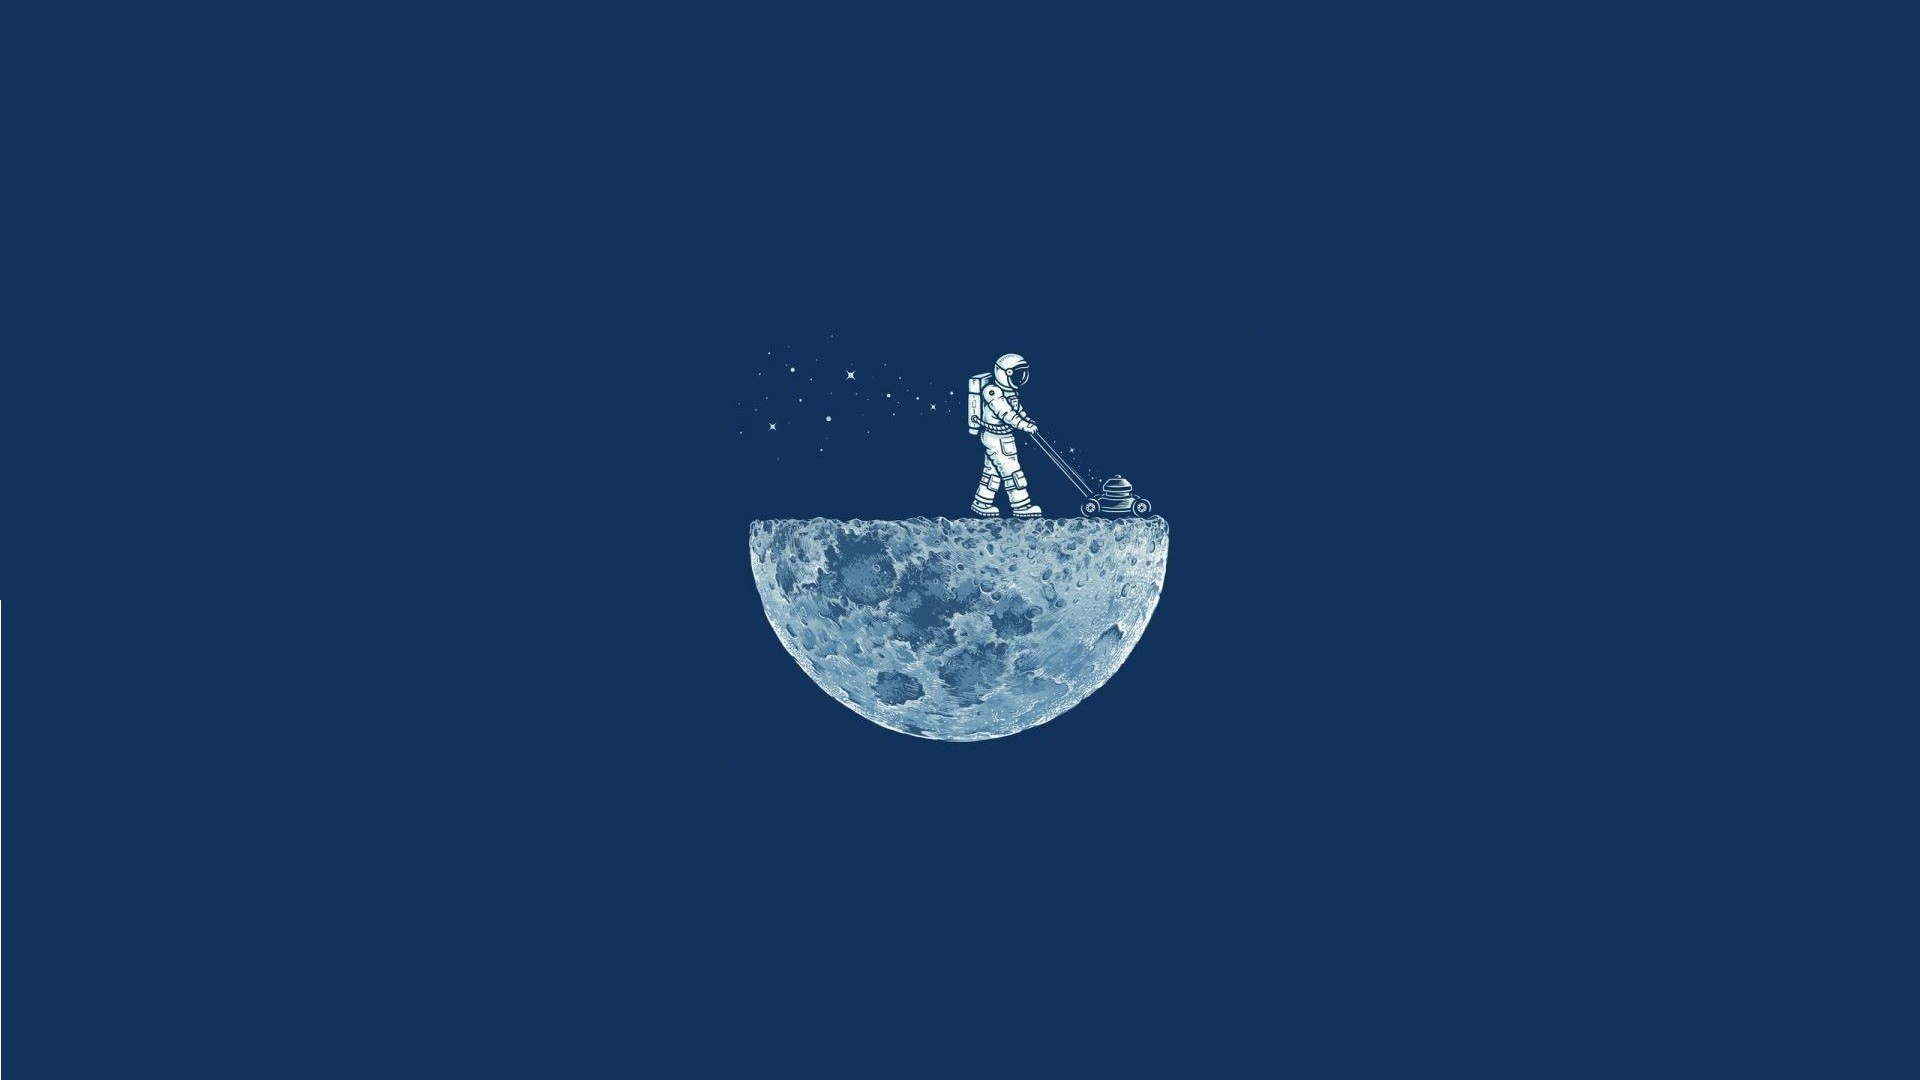 Moving the Moon